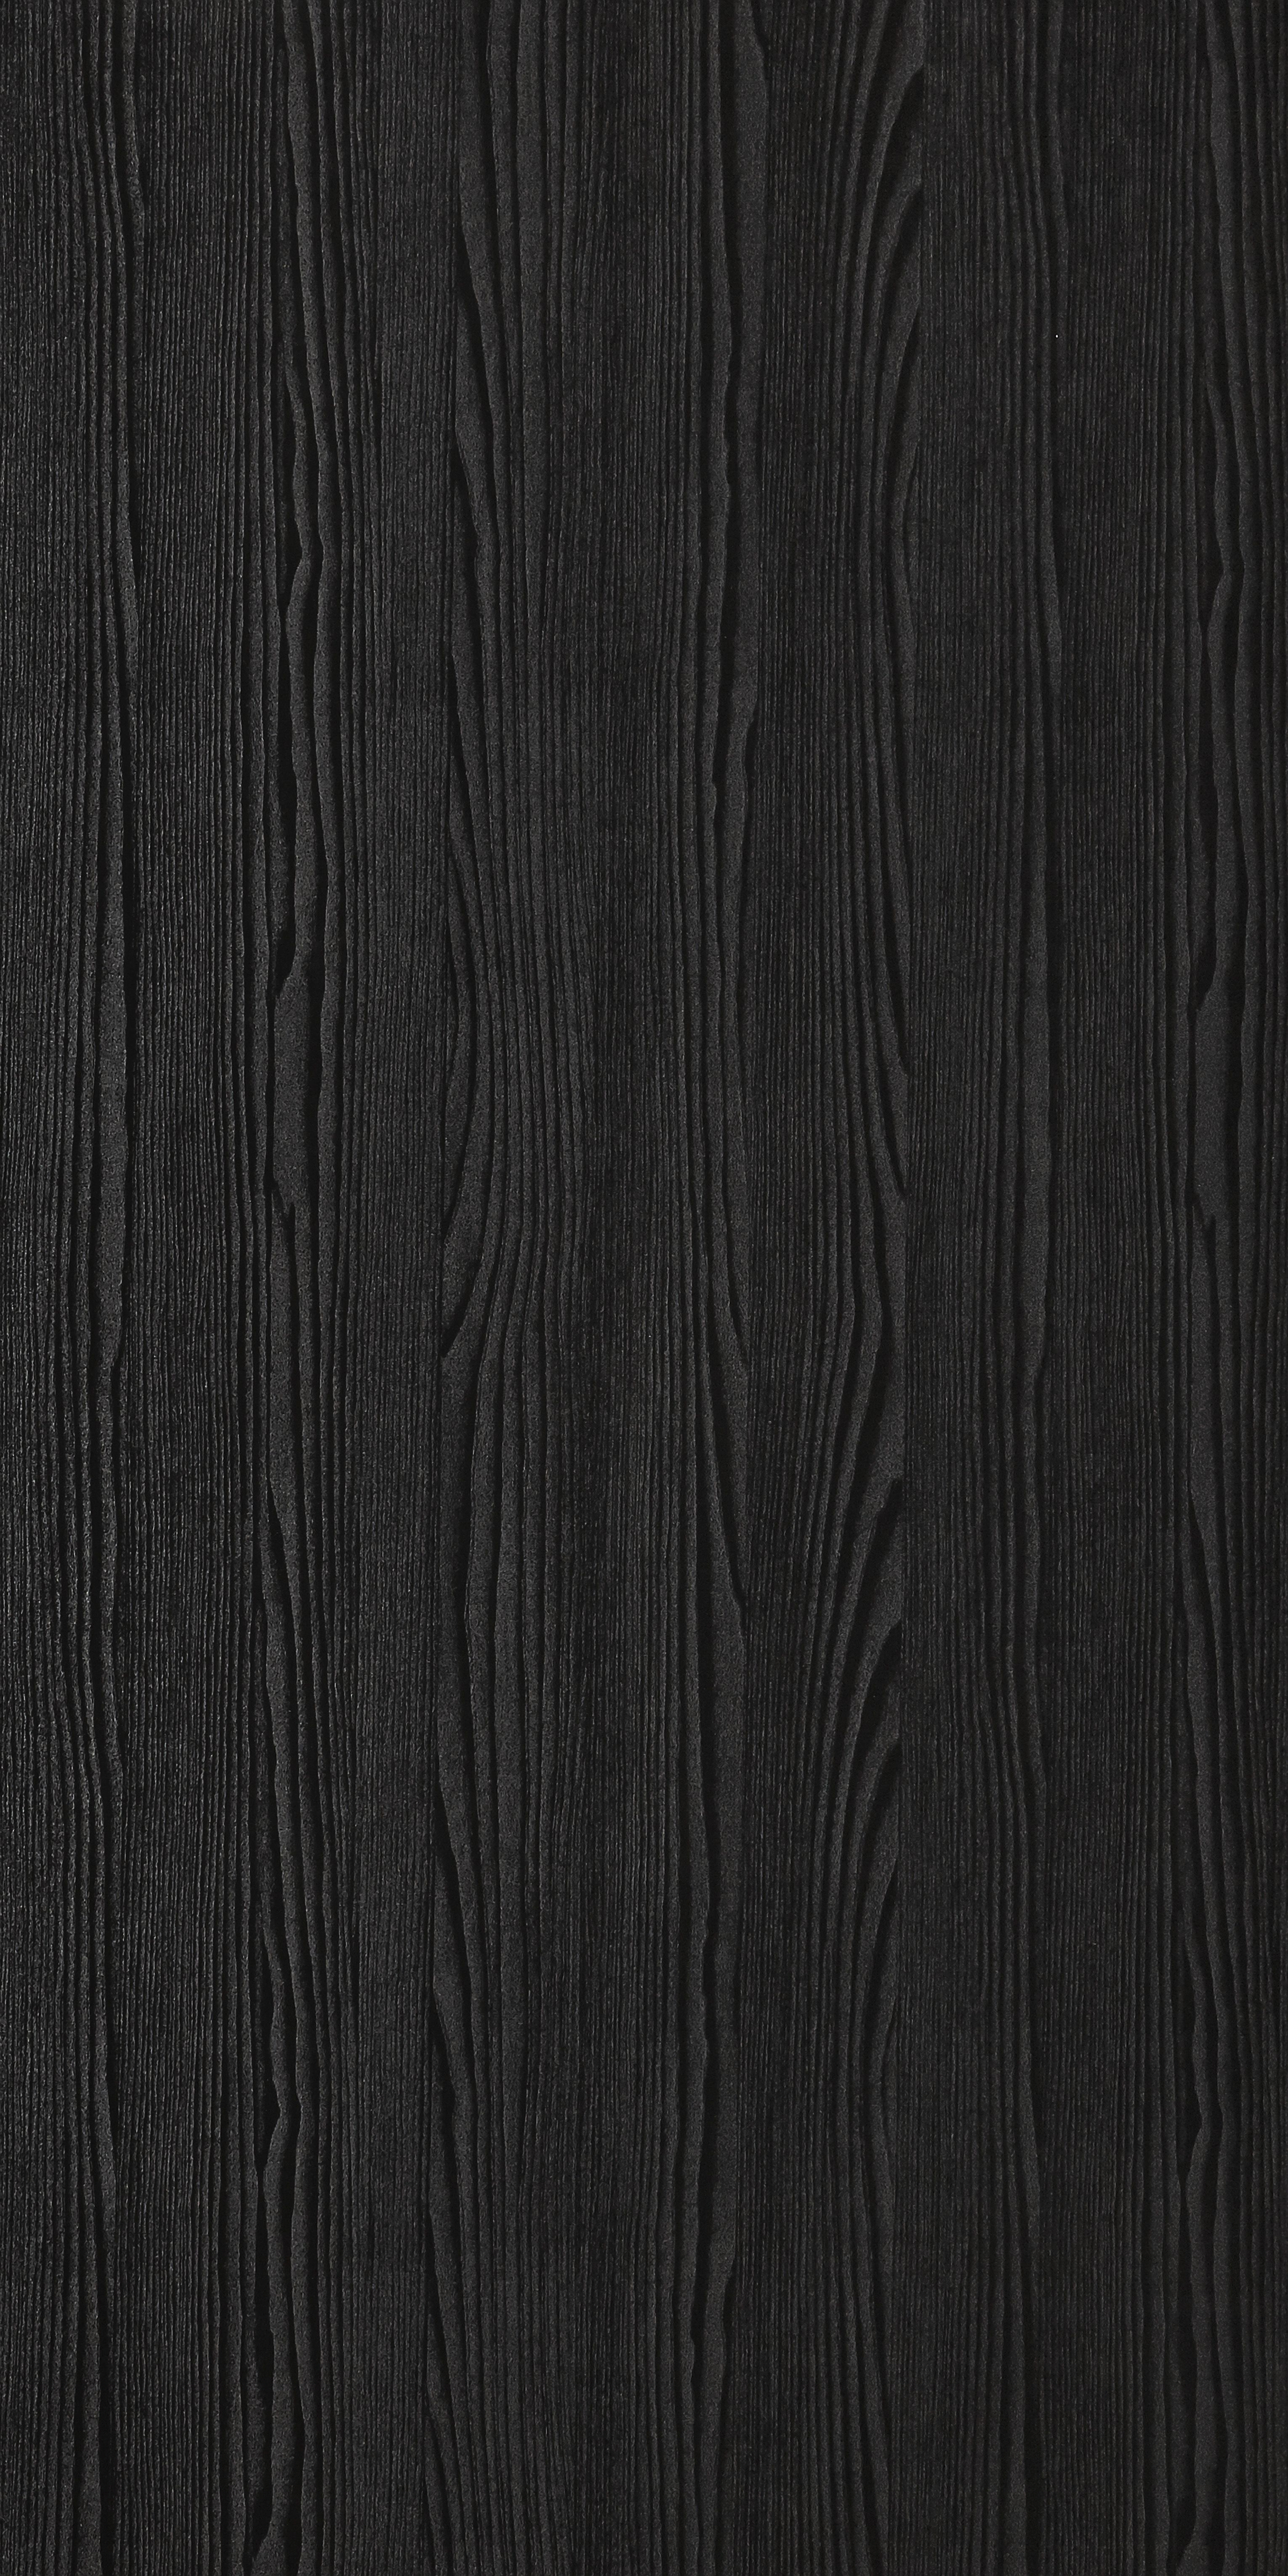 edl black ashwood surfacing pinterest materiaux texture bois et bois. Black Bedroom Furniture Sets. Home Design Ideas